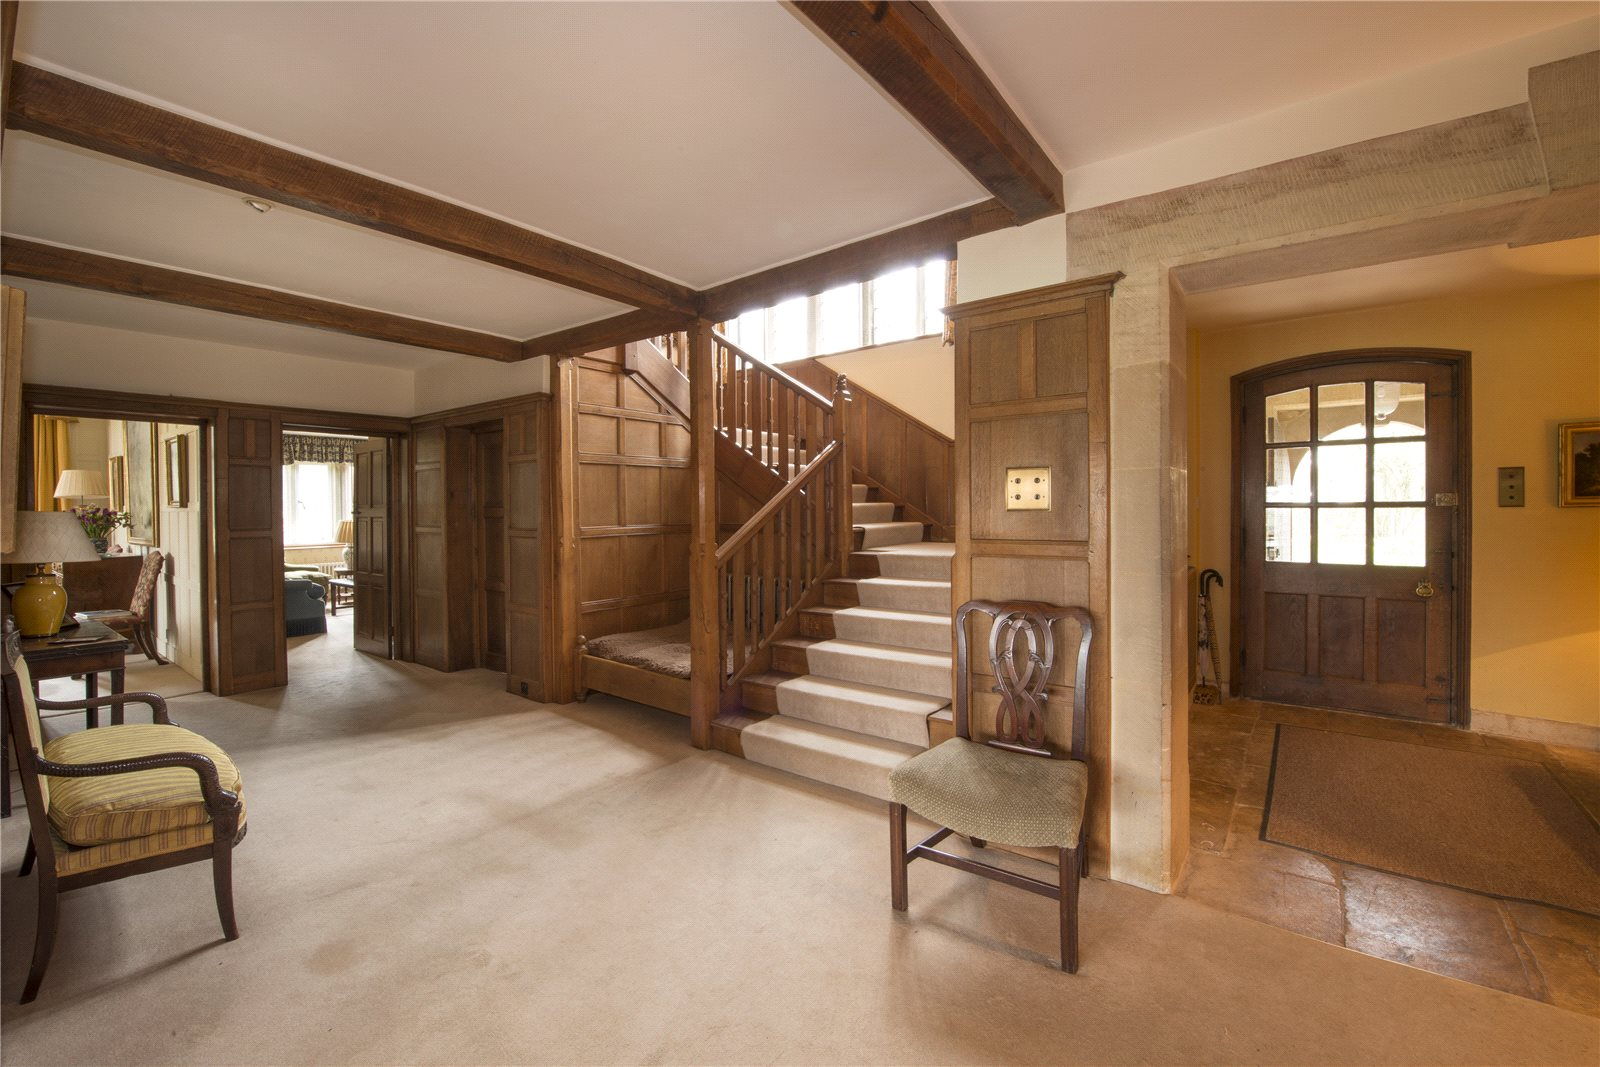 Additional photo for property listing at Warrens Gorse, Daglingworth, Cirencester, Gloucestershire, GL7 Cirencester, 英格蘭